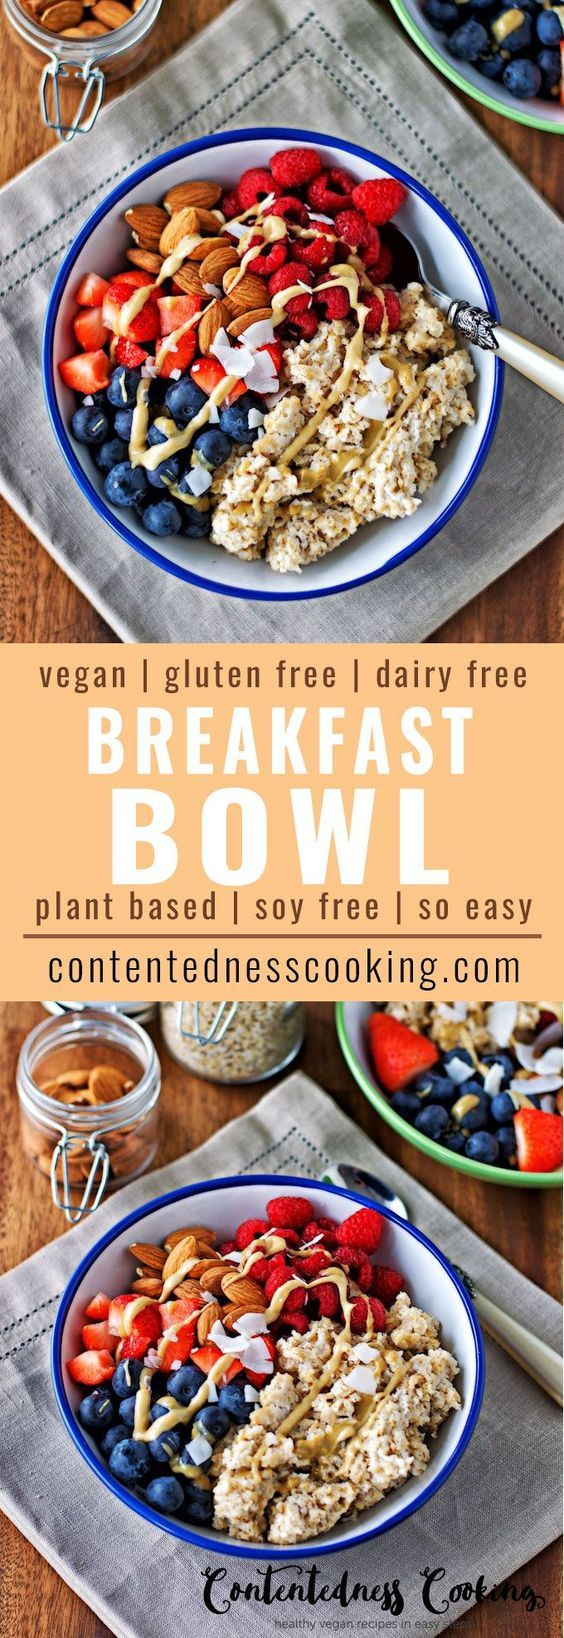 If you need an easy healthy breakfast, then my Vegan Breakfast Bowl is exactly what you need. Full of fruits, nuts, and with gluten free oats, this is not only nourishing but also delicious. If you like, you can also make this an amazing quinoa breakfast recipe by substituting the oats. Sprinkle your favorite nut butter over this Breakfast Bowl and be energized for the day.